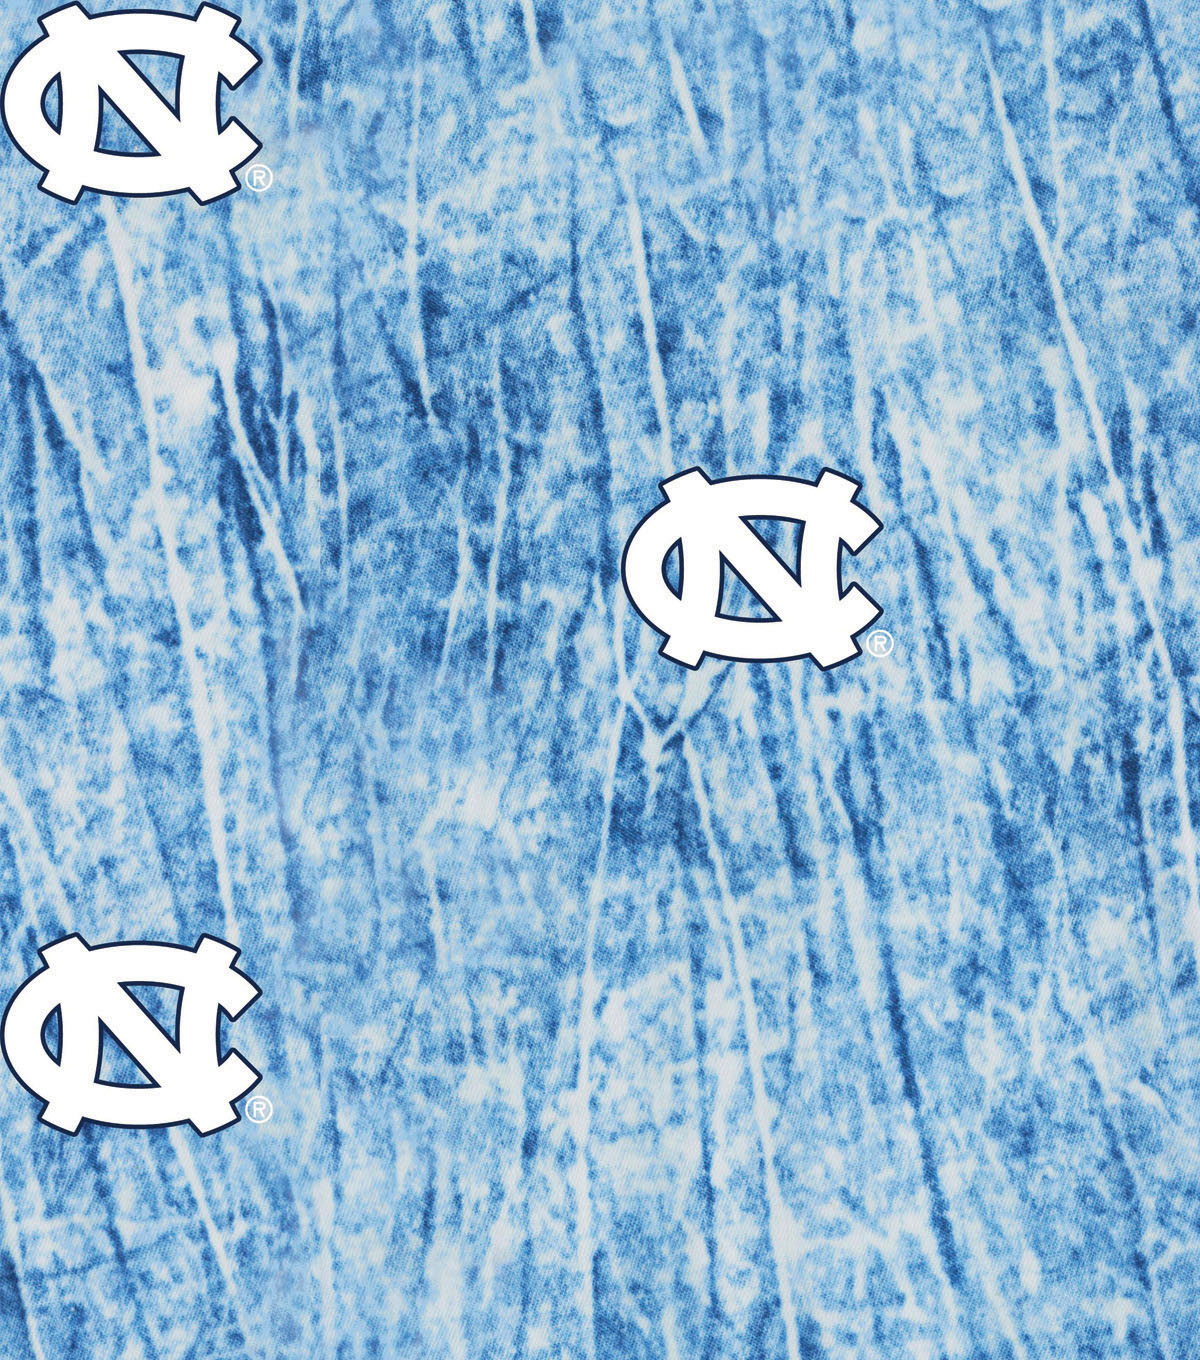 University of North Carolina Tarheels Cotton Fabric 44\u0022-Tie Dye